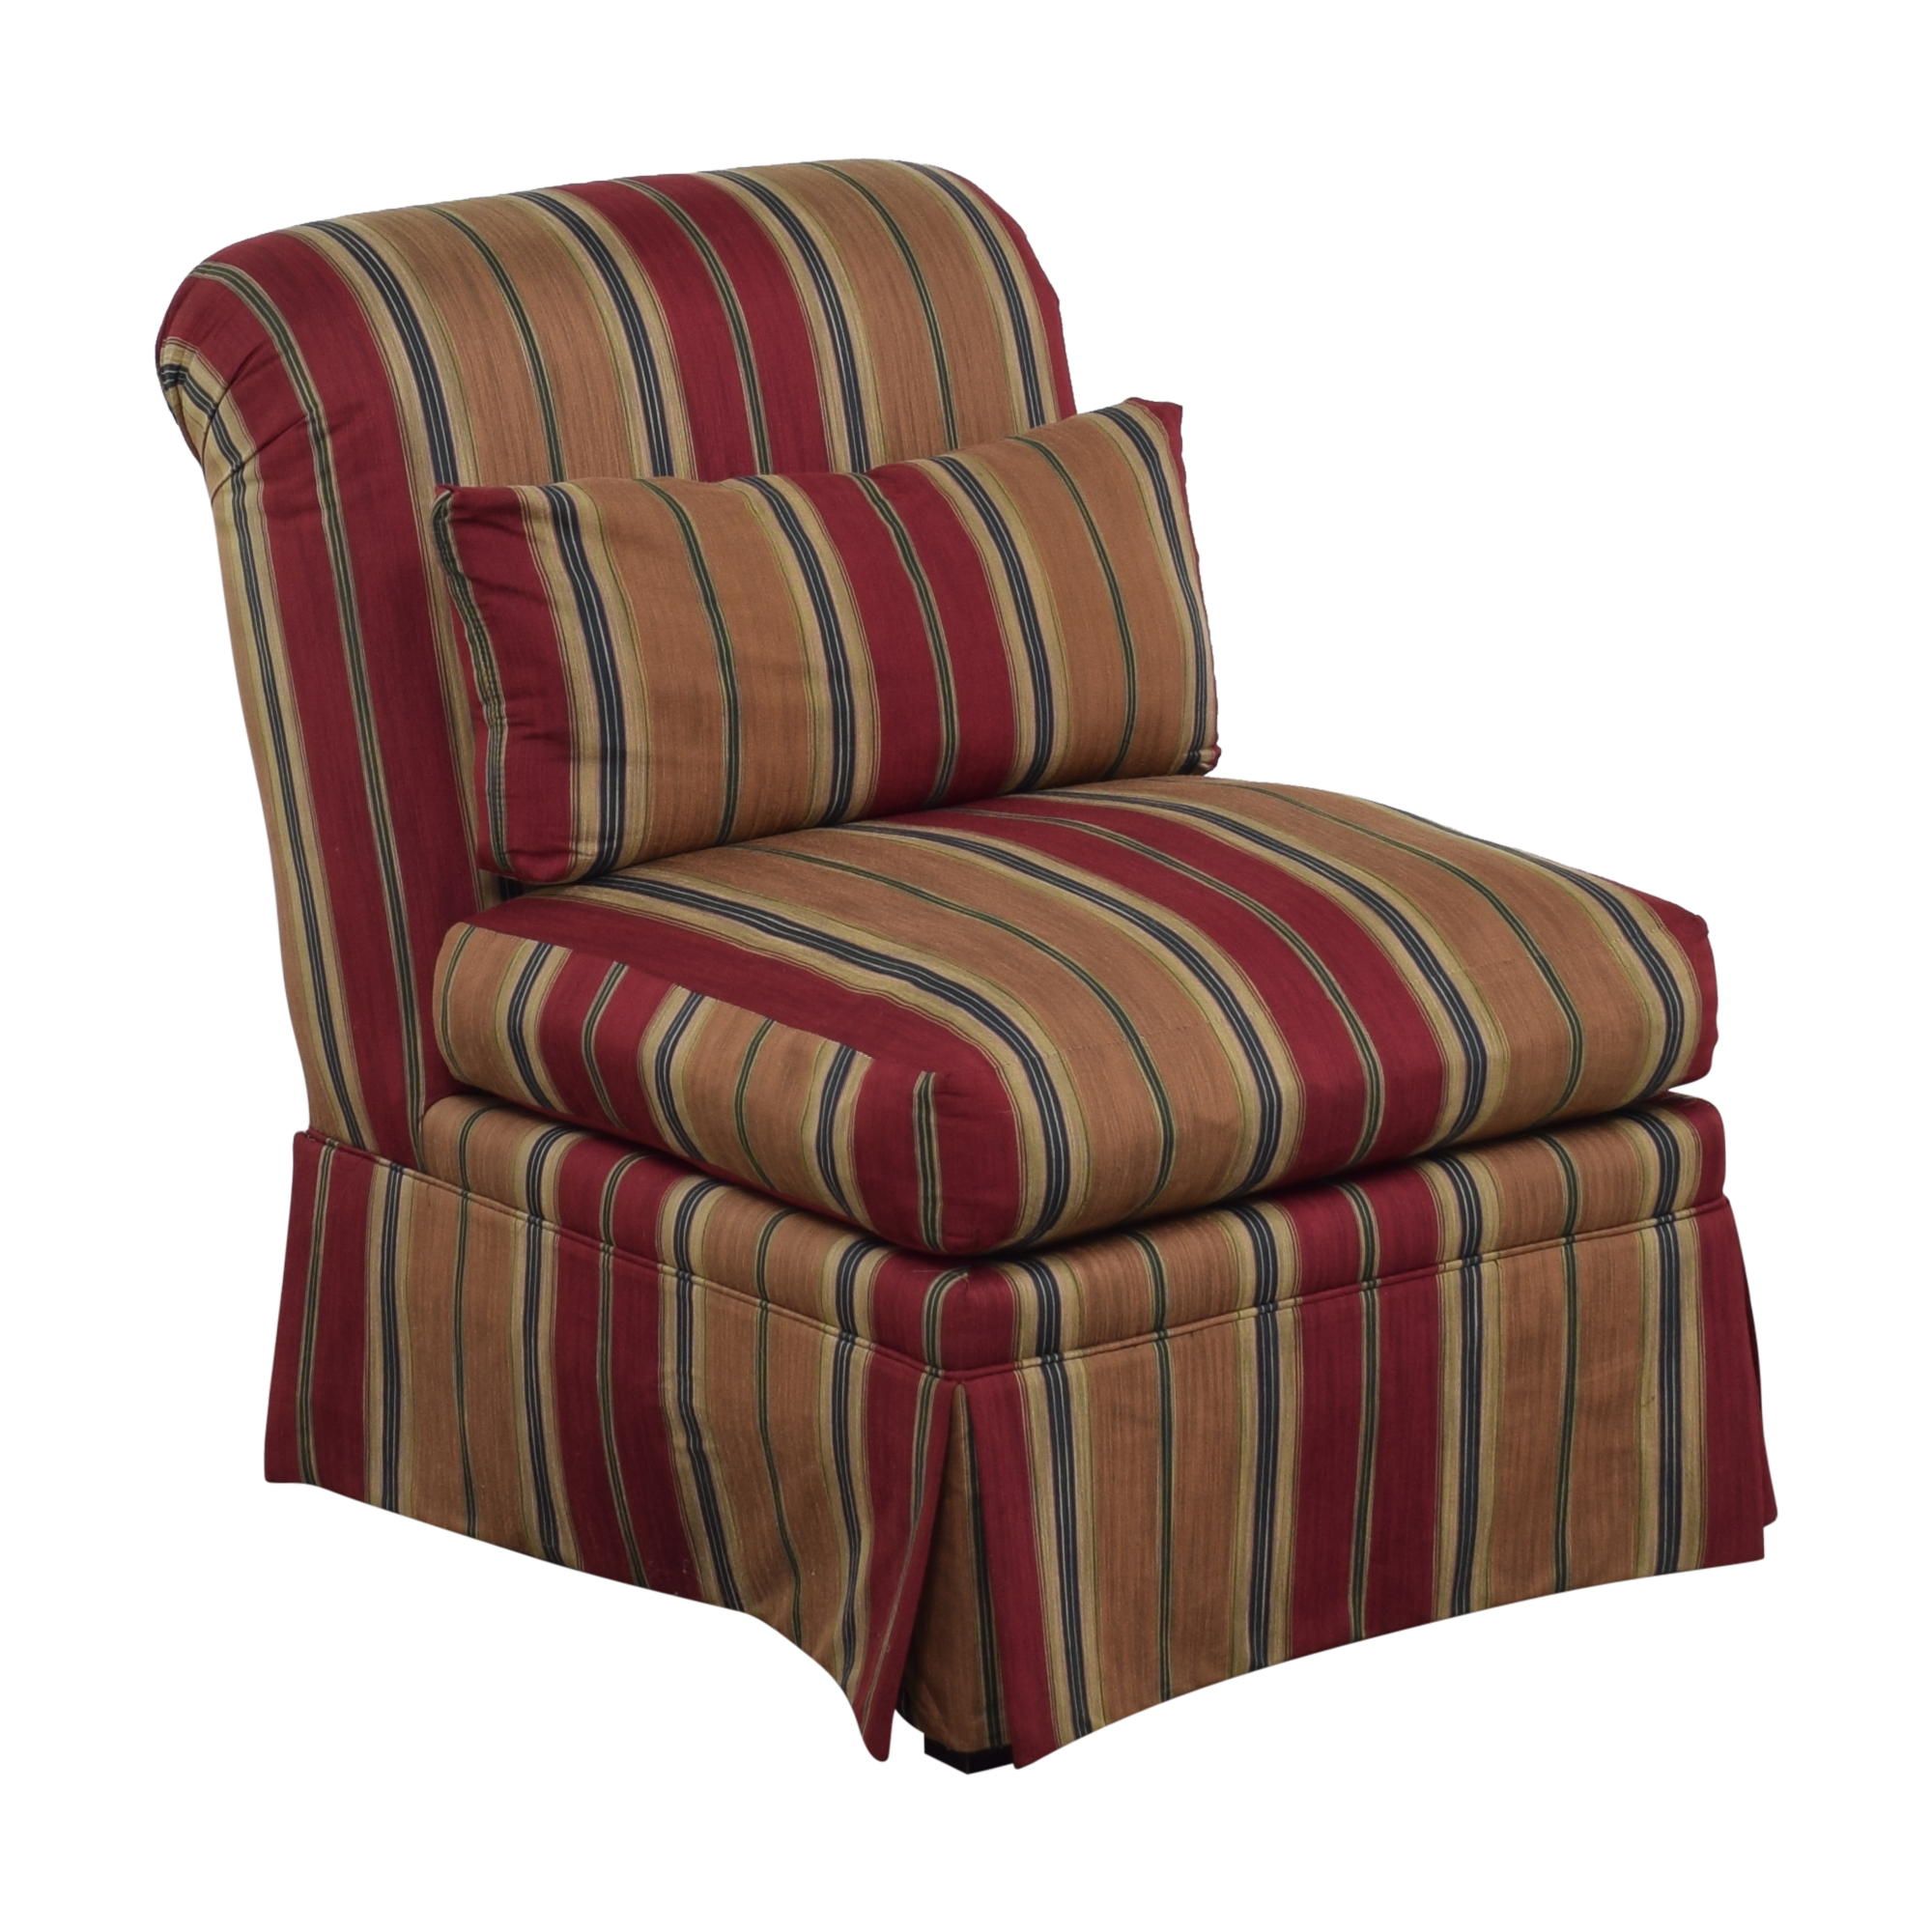 J. Royale Furniture J. Royale Furniture Upholstered Armless Chair nyc